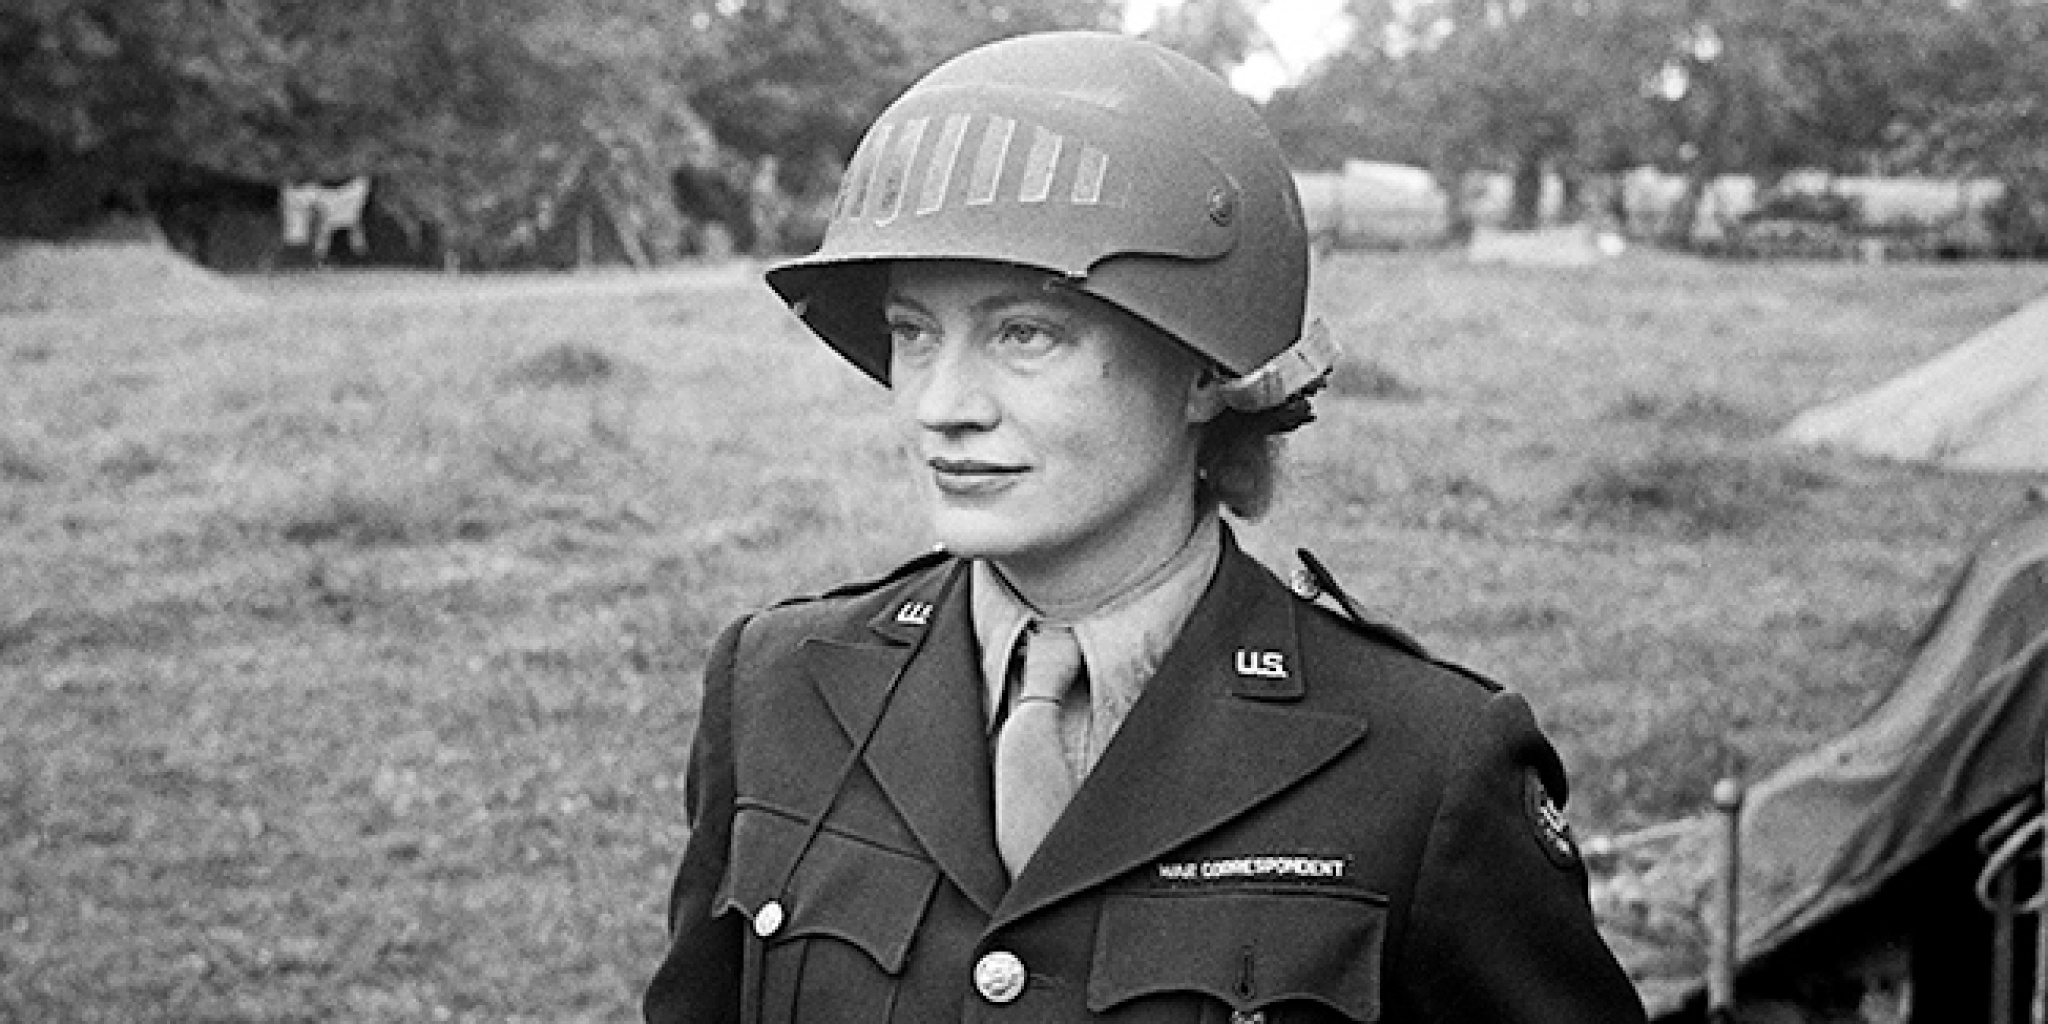 Lee Miller in steel helmet specially designed for using a camera, Normandy, Unknown Photographer, 1944